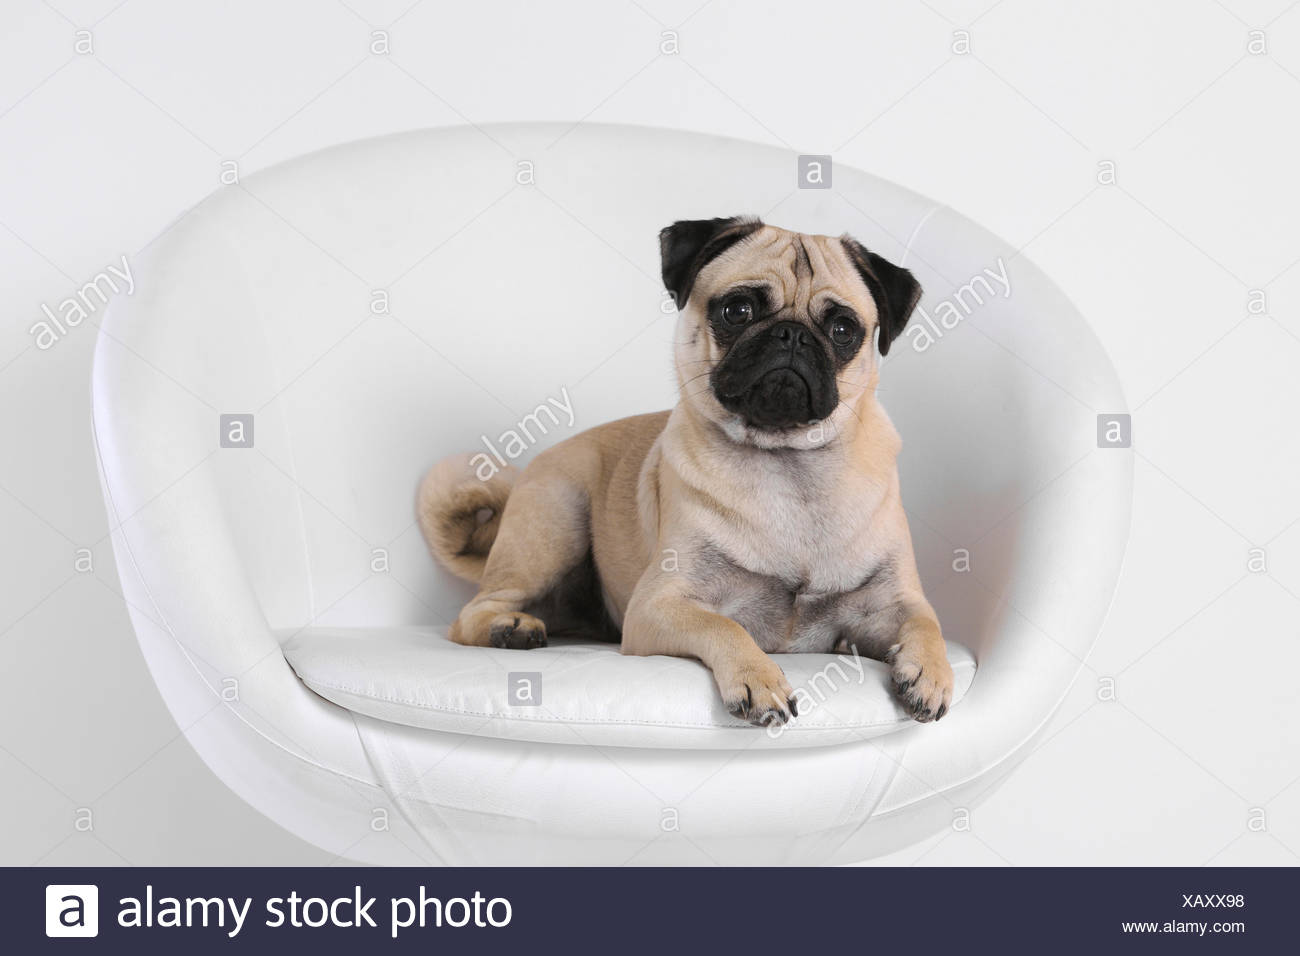 Isolated Domestic Animal Pet Domestic Animals Pets Dog Dogs Pugs Fatties Mops Pugs Fatties Portrait Armchair Seat Stock Photo Alamy